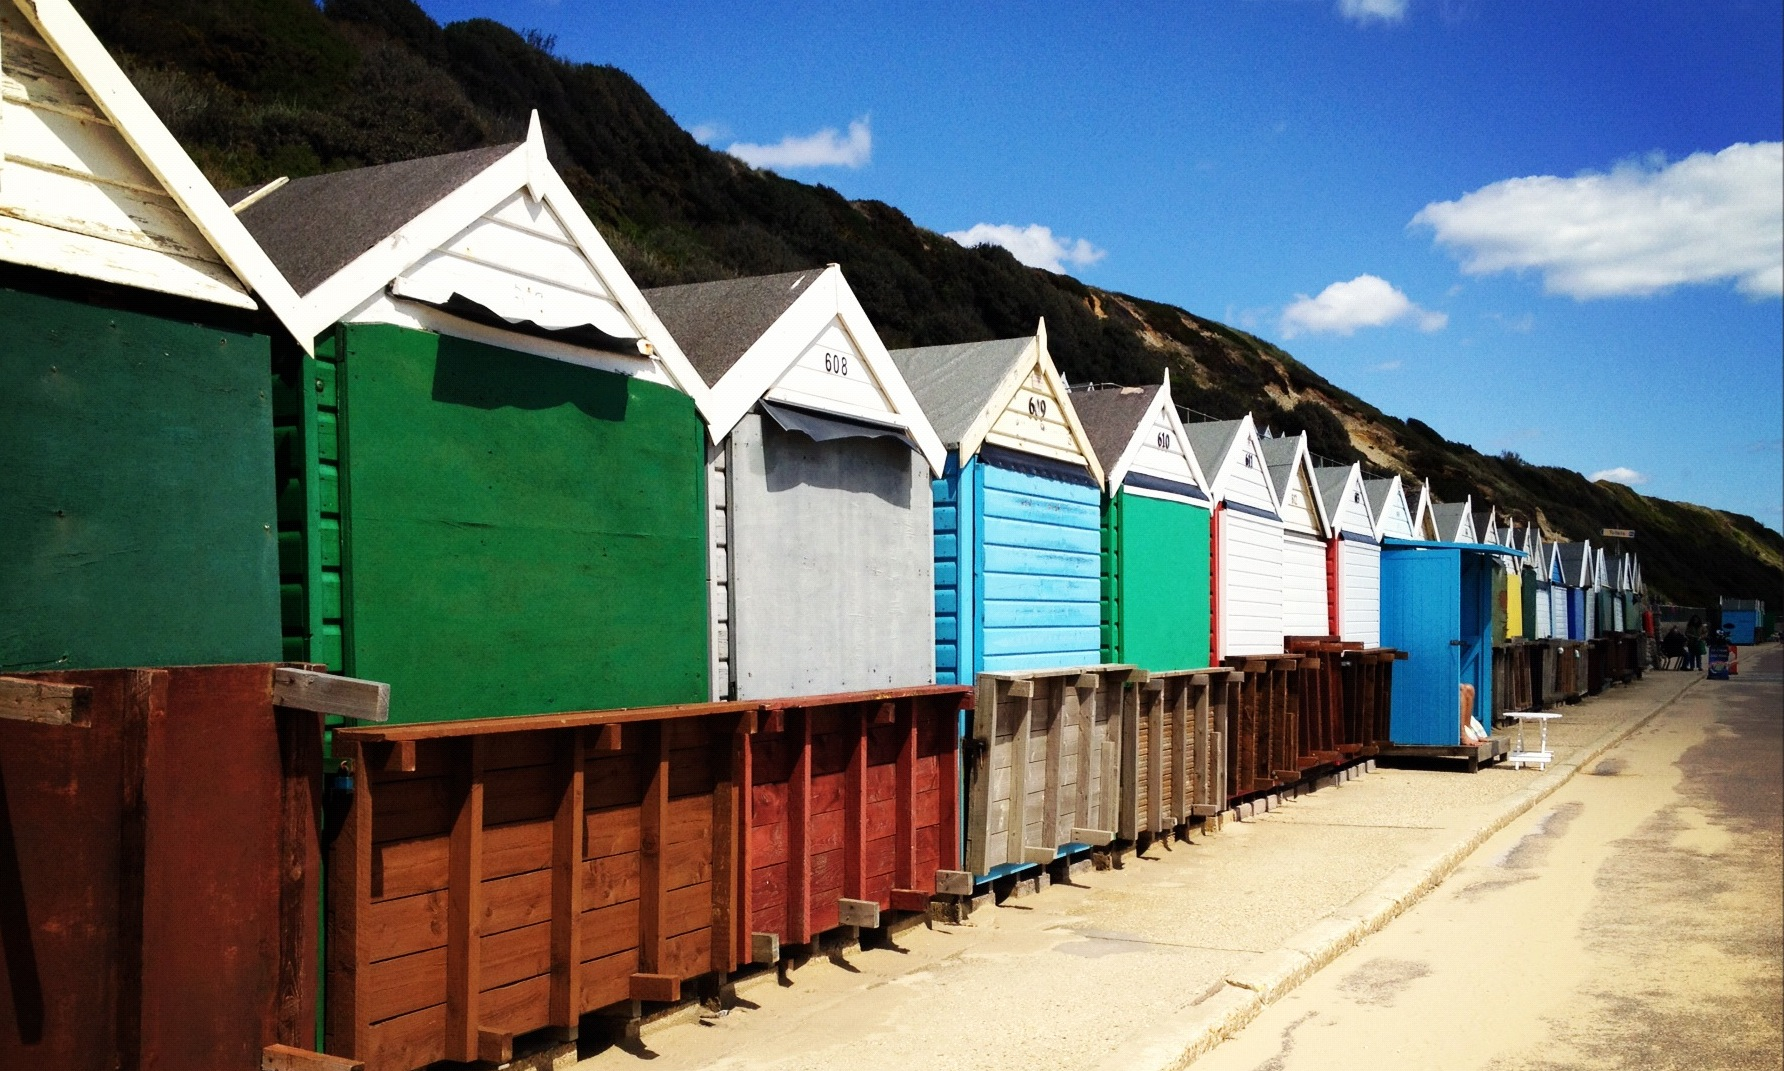 Beach huts at Boscombe beach in Bournemouth